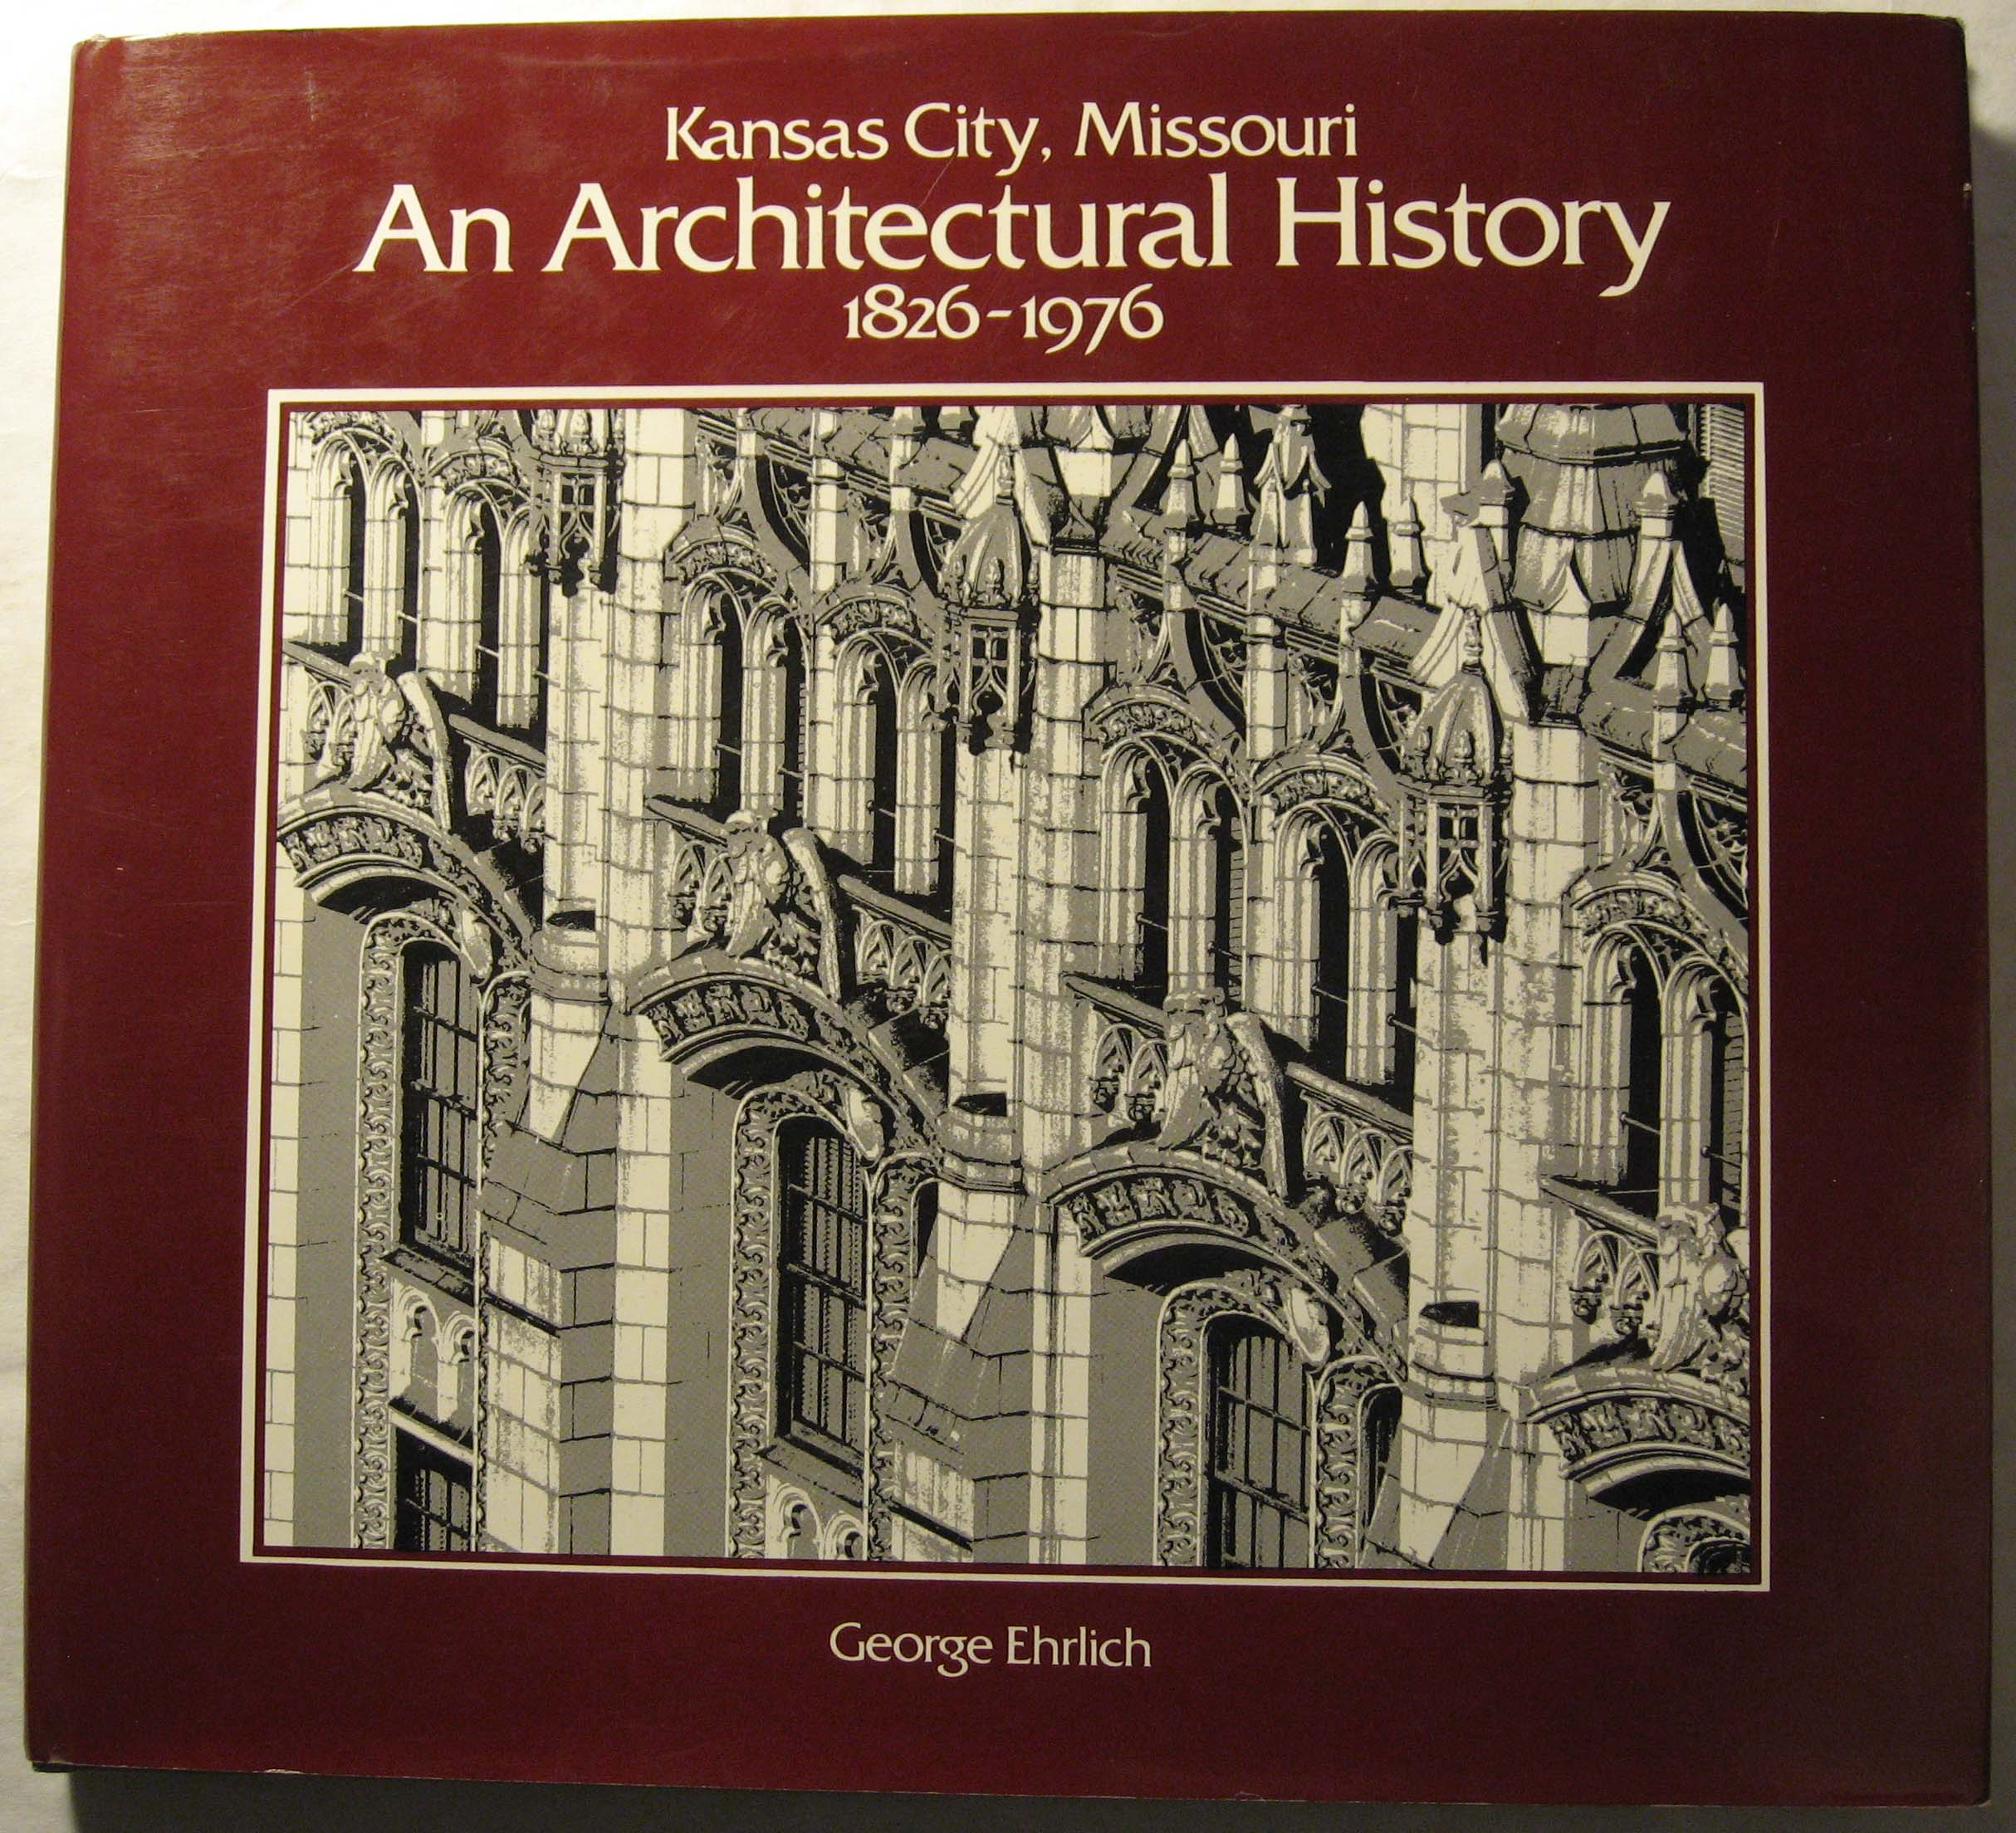 Kansas City, Missouri: An Architectural History, 1826-1976